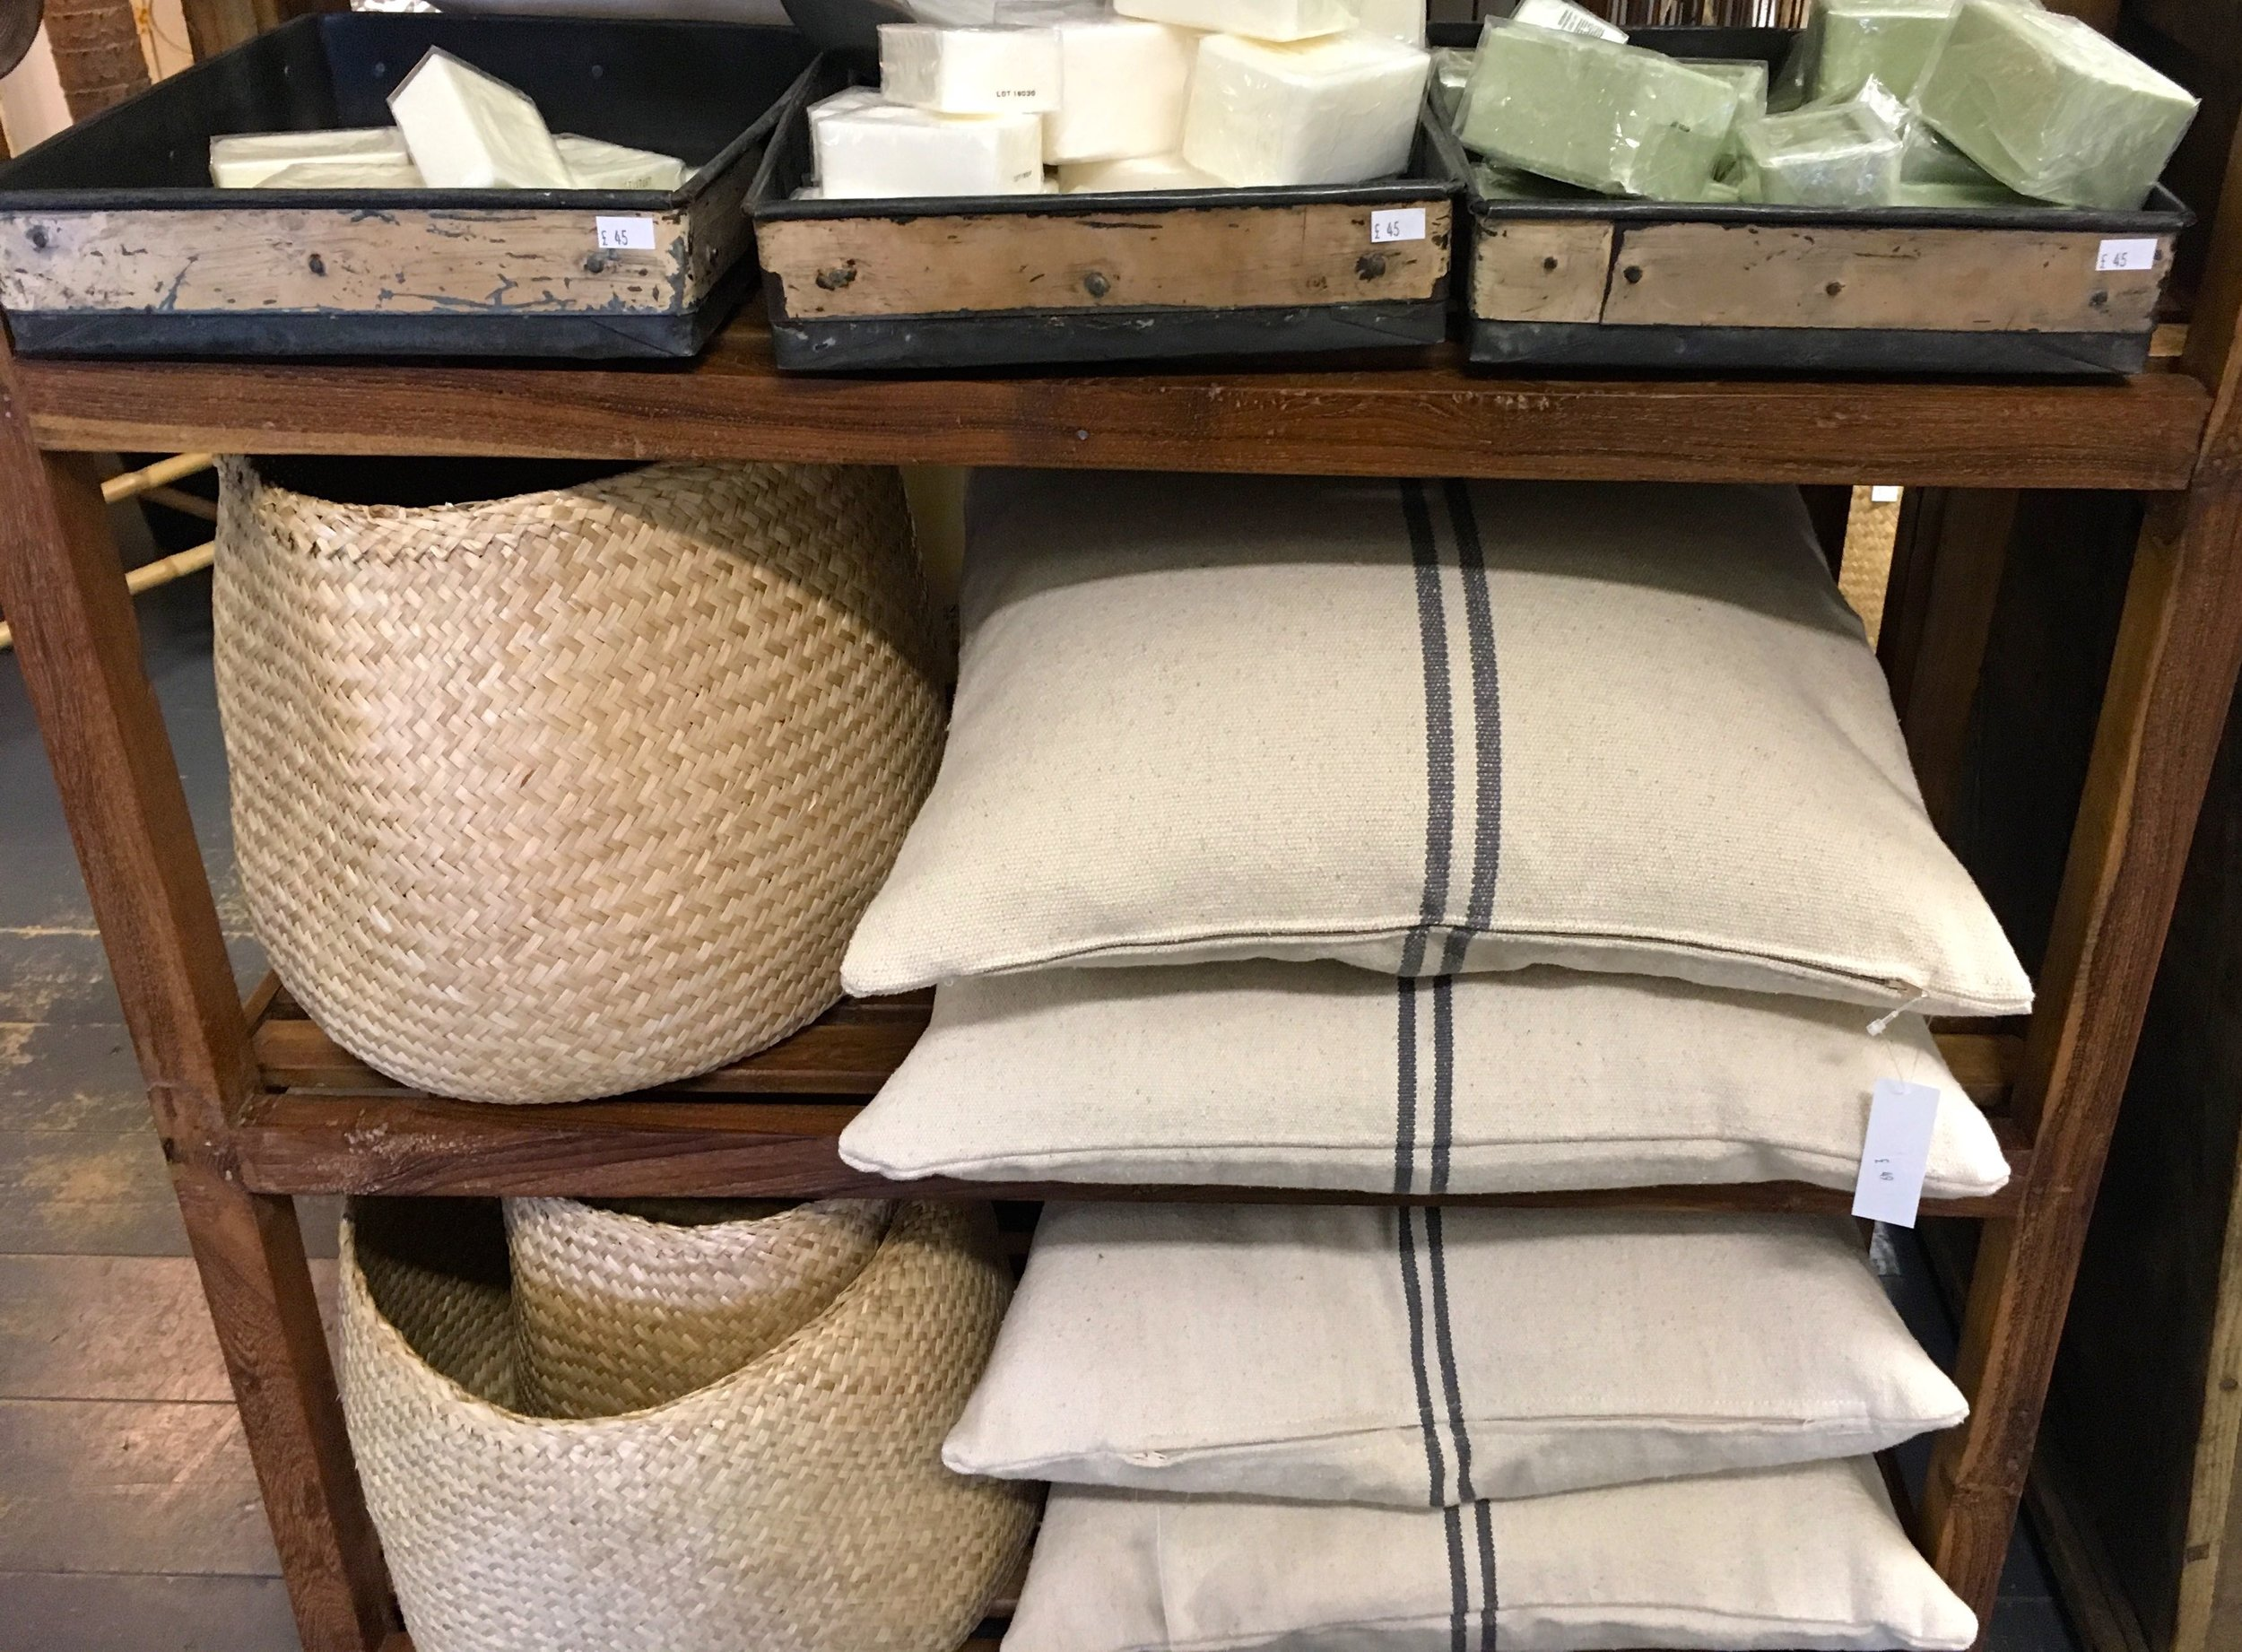 classic striped cushions and woven baskets